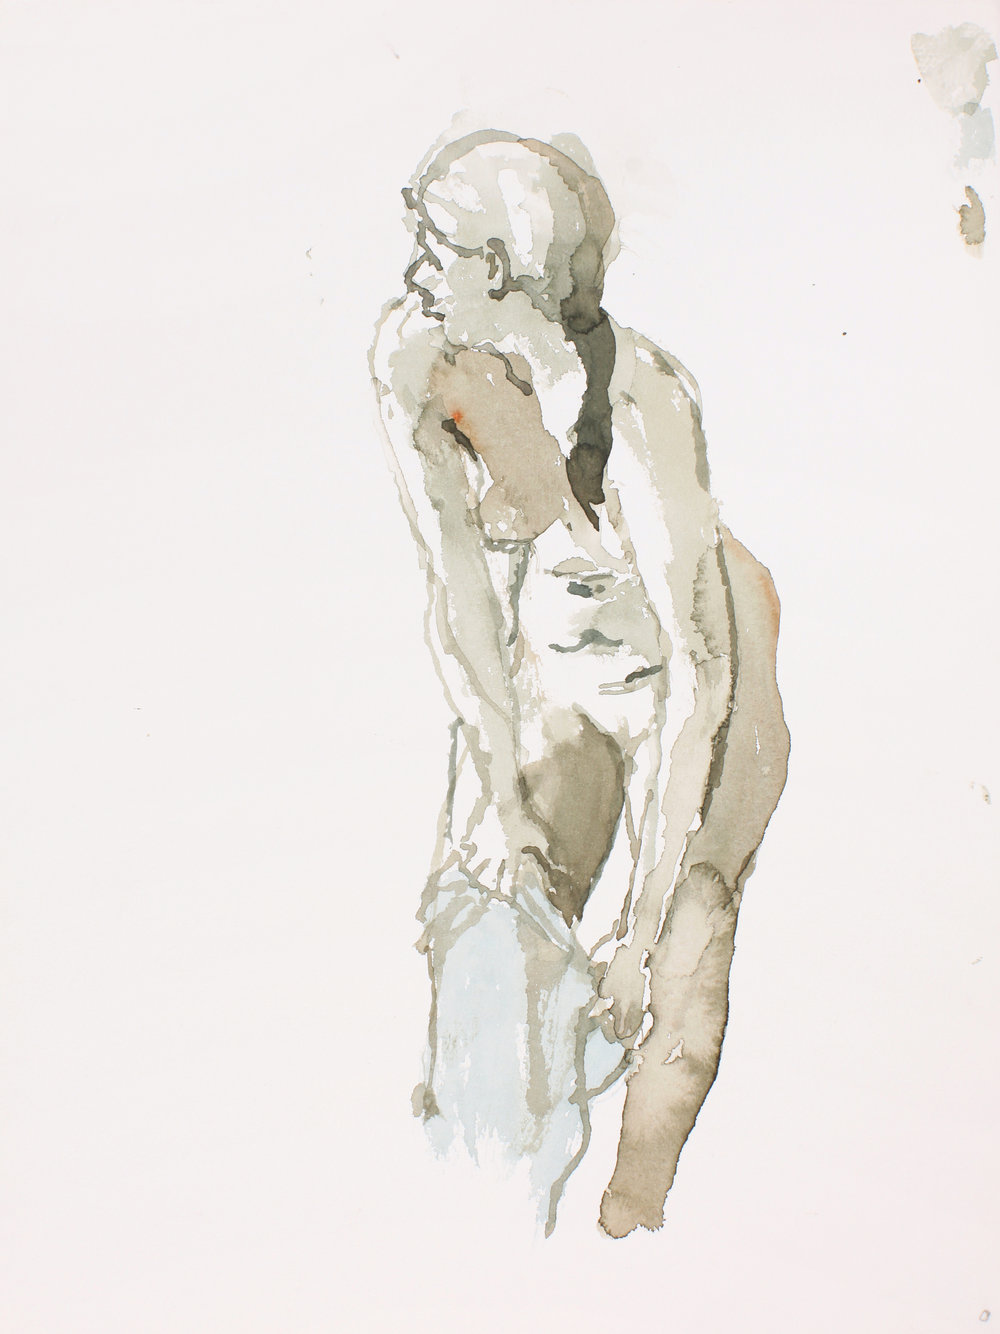 2004_Standing_Nude_Putting_on_Jeans_watercolour__on_paper_15x11in_WPF248.jpg